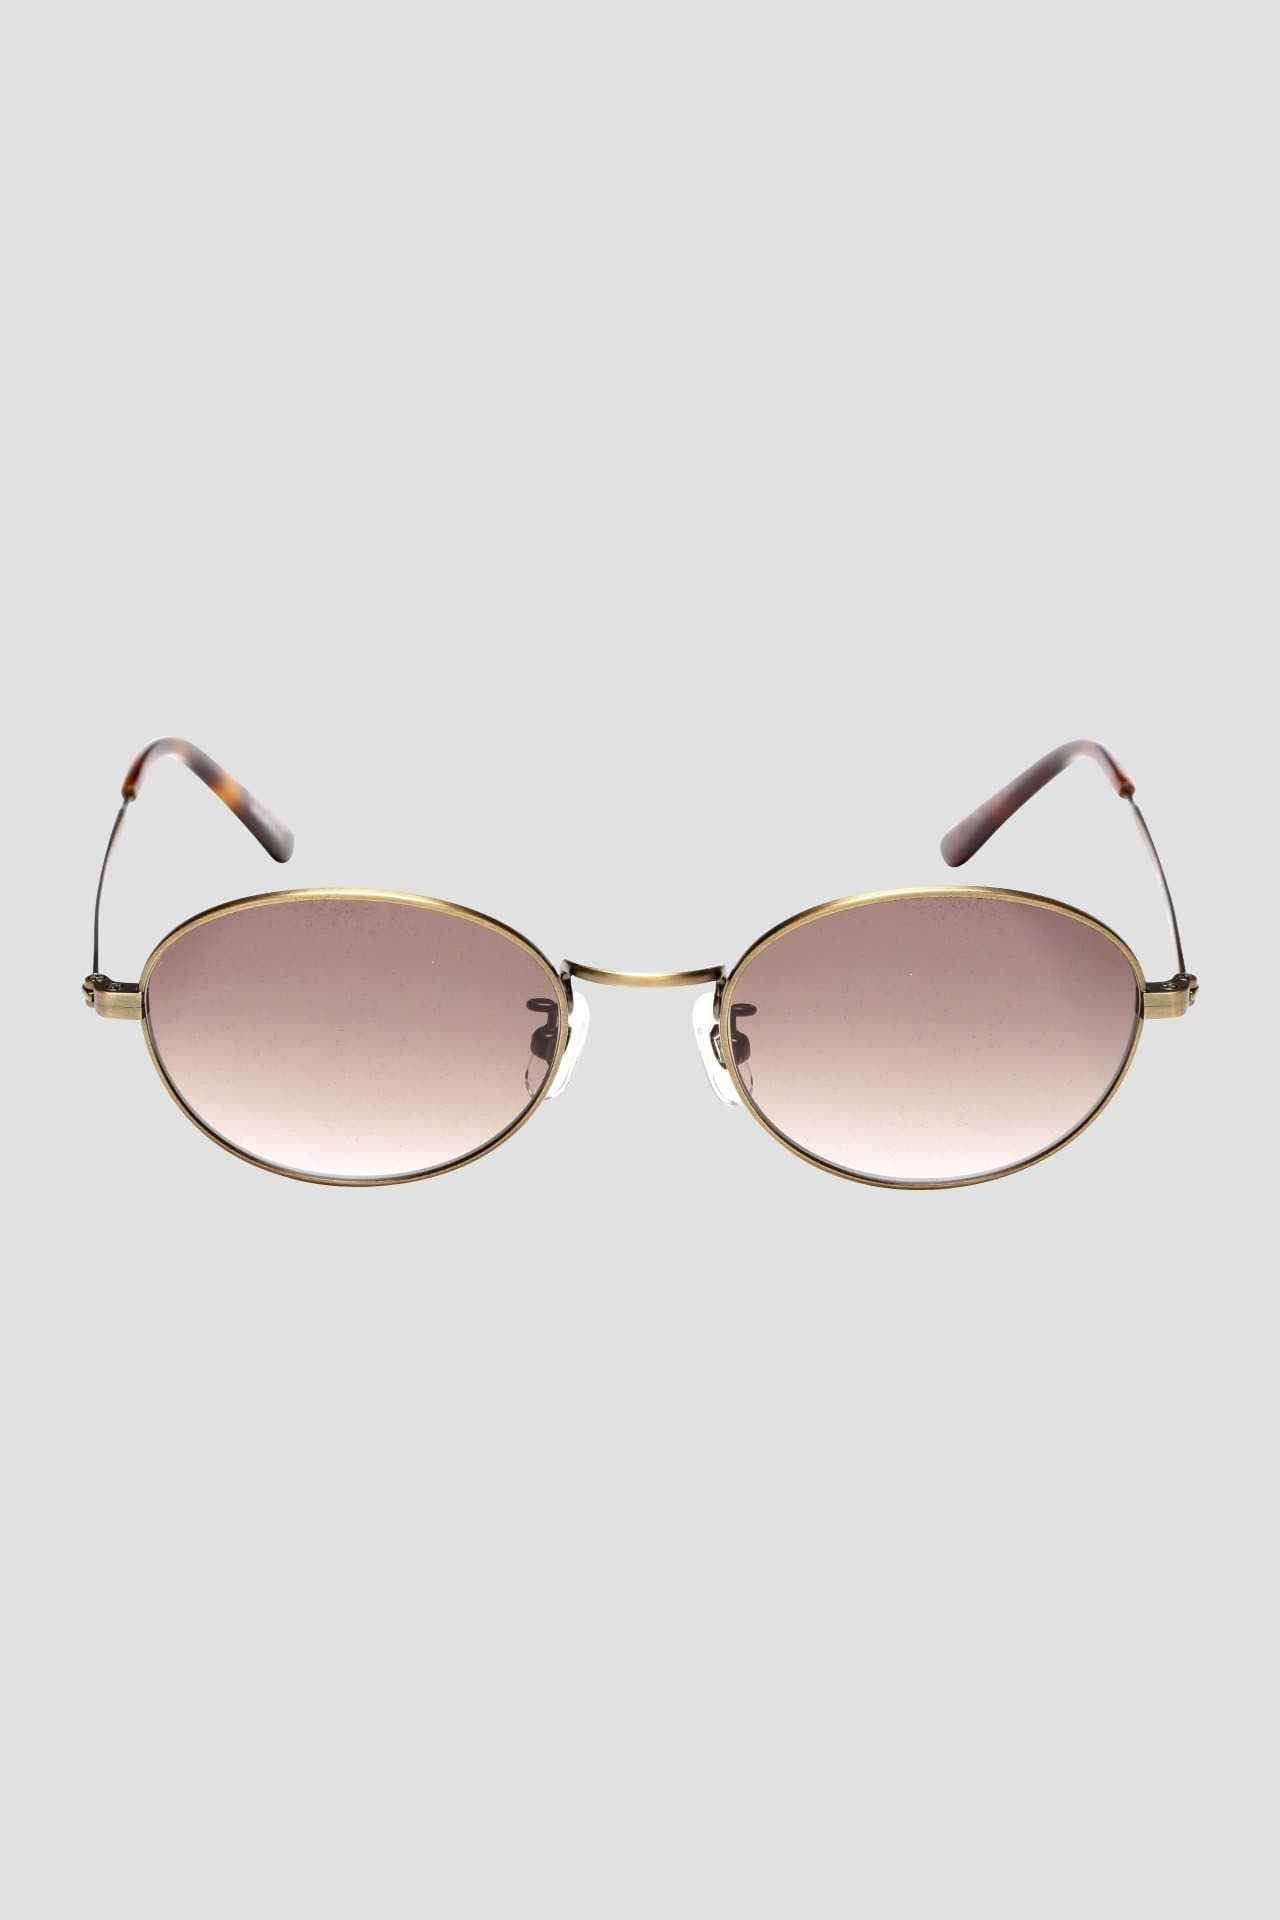 METAL FRAME SUNGLASSES7